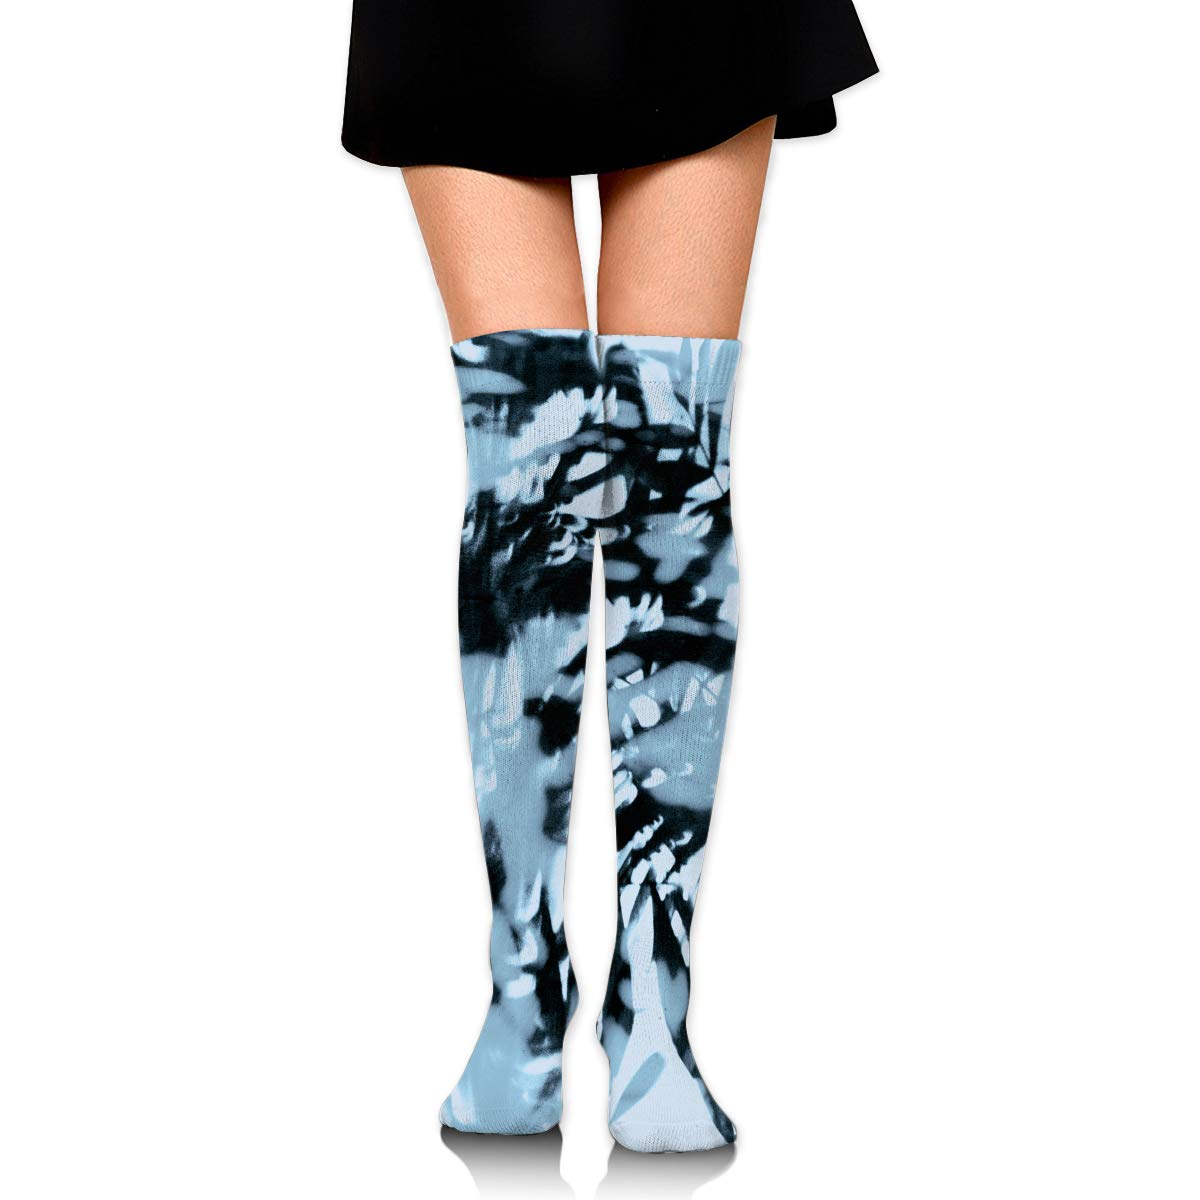 Visual Arts Womens Knee High Socks Fancy Design, Best For ...